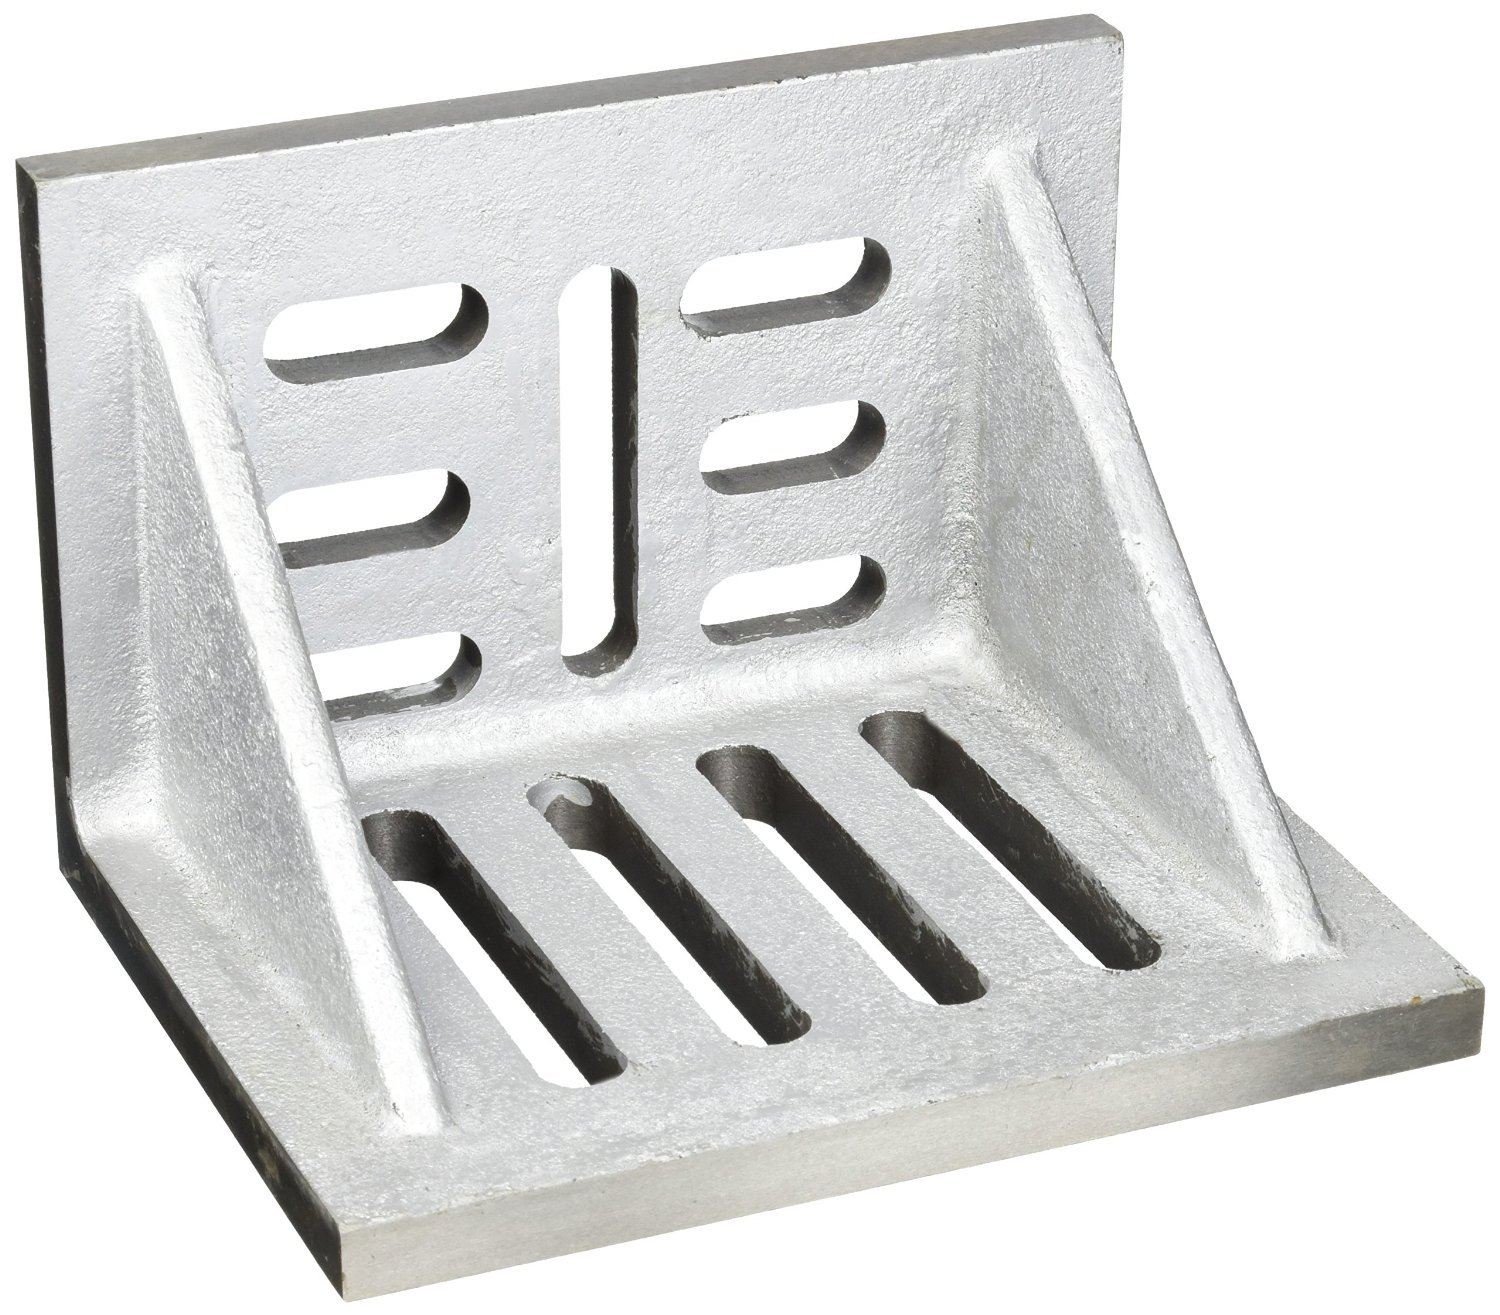 HHIP 3402-0310 10'' x 8'' x 6'' Slotted Angle Plate, Webbed